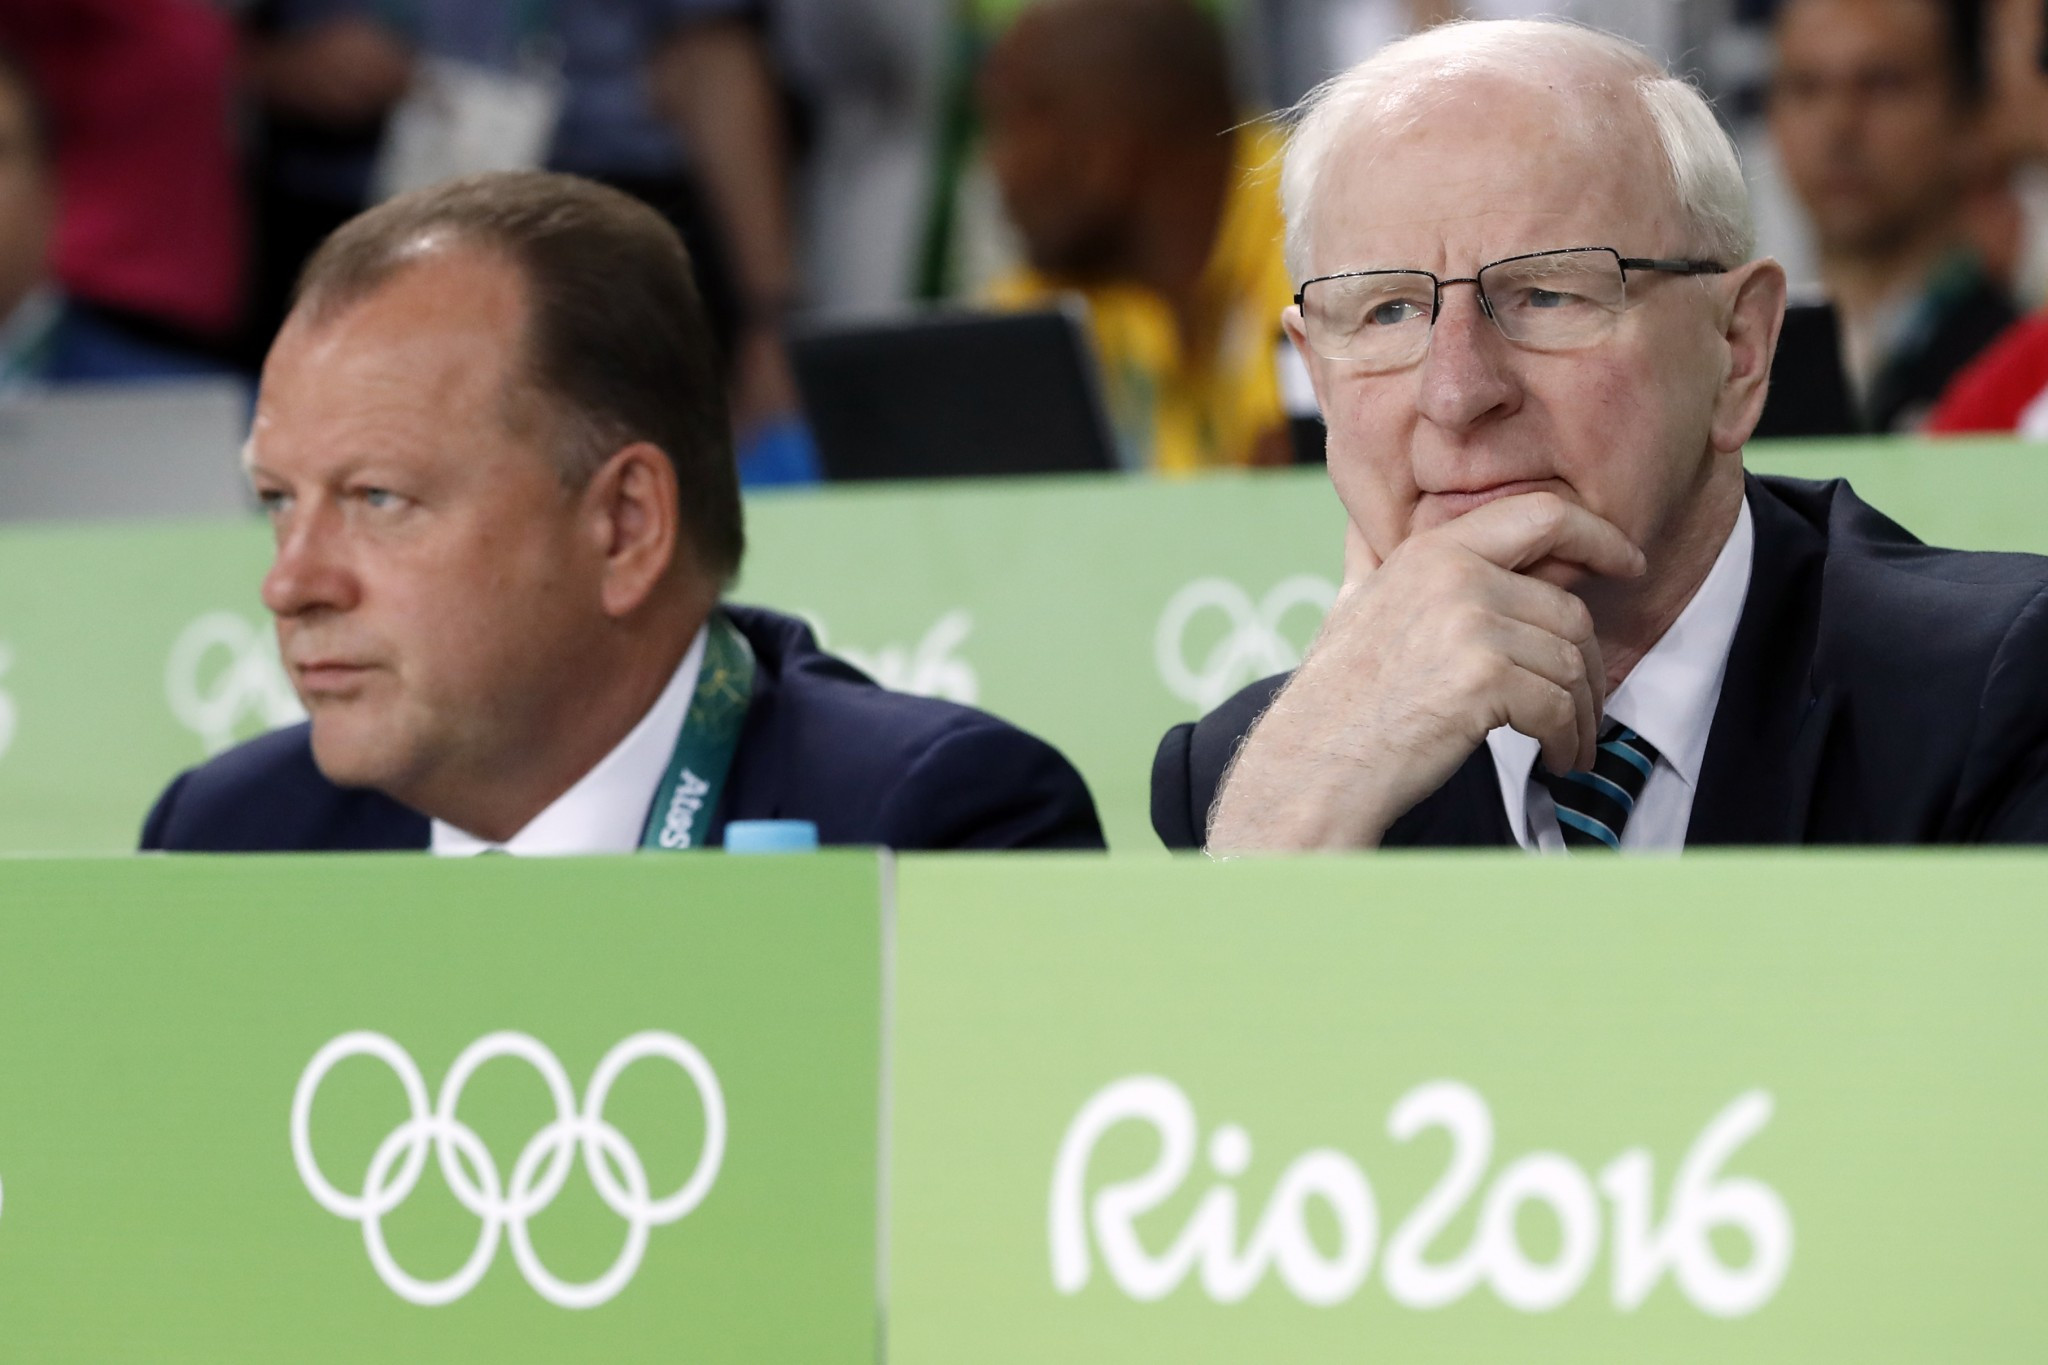 Patrick Hickey was arrested during the Rio 2016 Olympic Games ©Getty Images